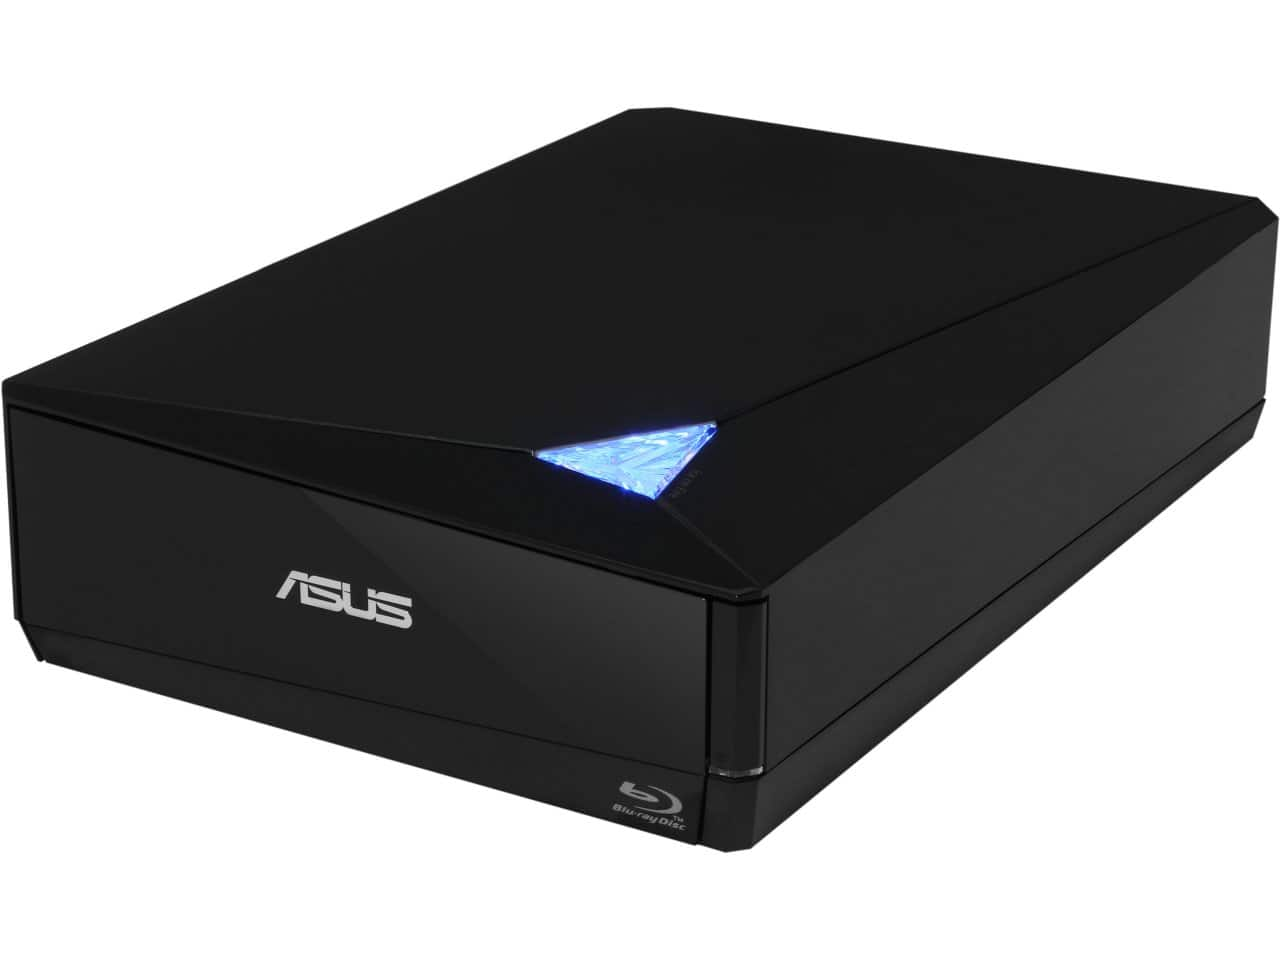 Asus USB 3.0 Desktop External 12x Blu-Ray Writer for $47.99 AR or 50-Pack PlexDisc 4.7GB 16X DVD-R Media for $5.99 AC + S&H @ Newegg.com